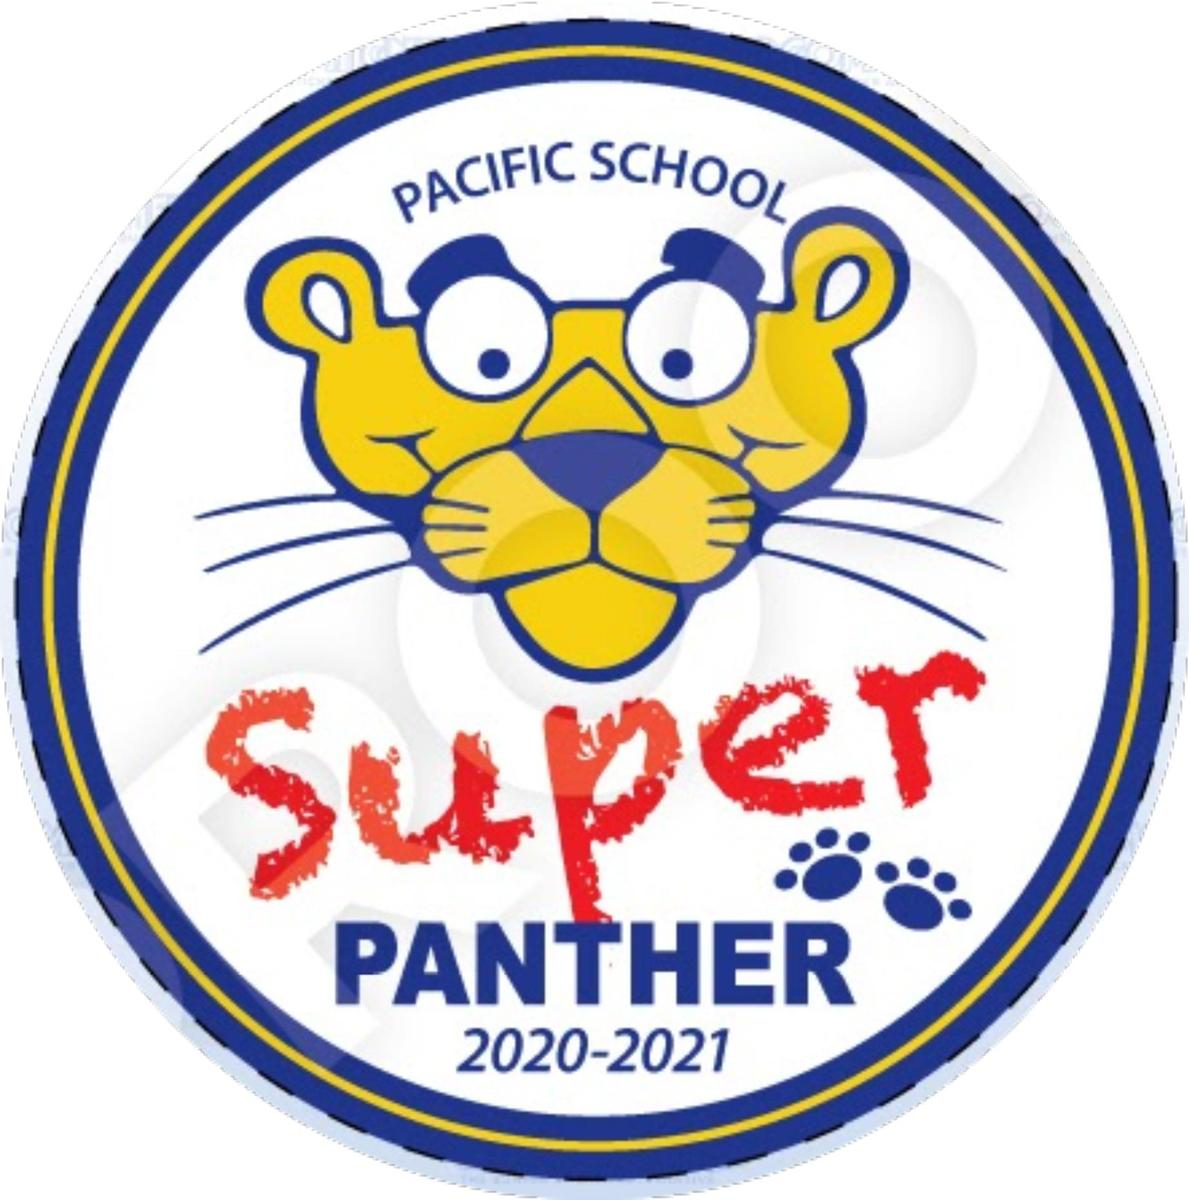 Super Panther Magnet